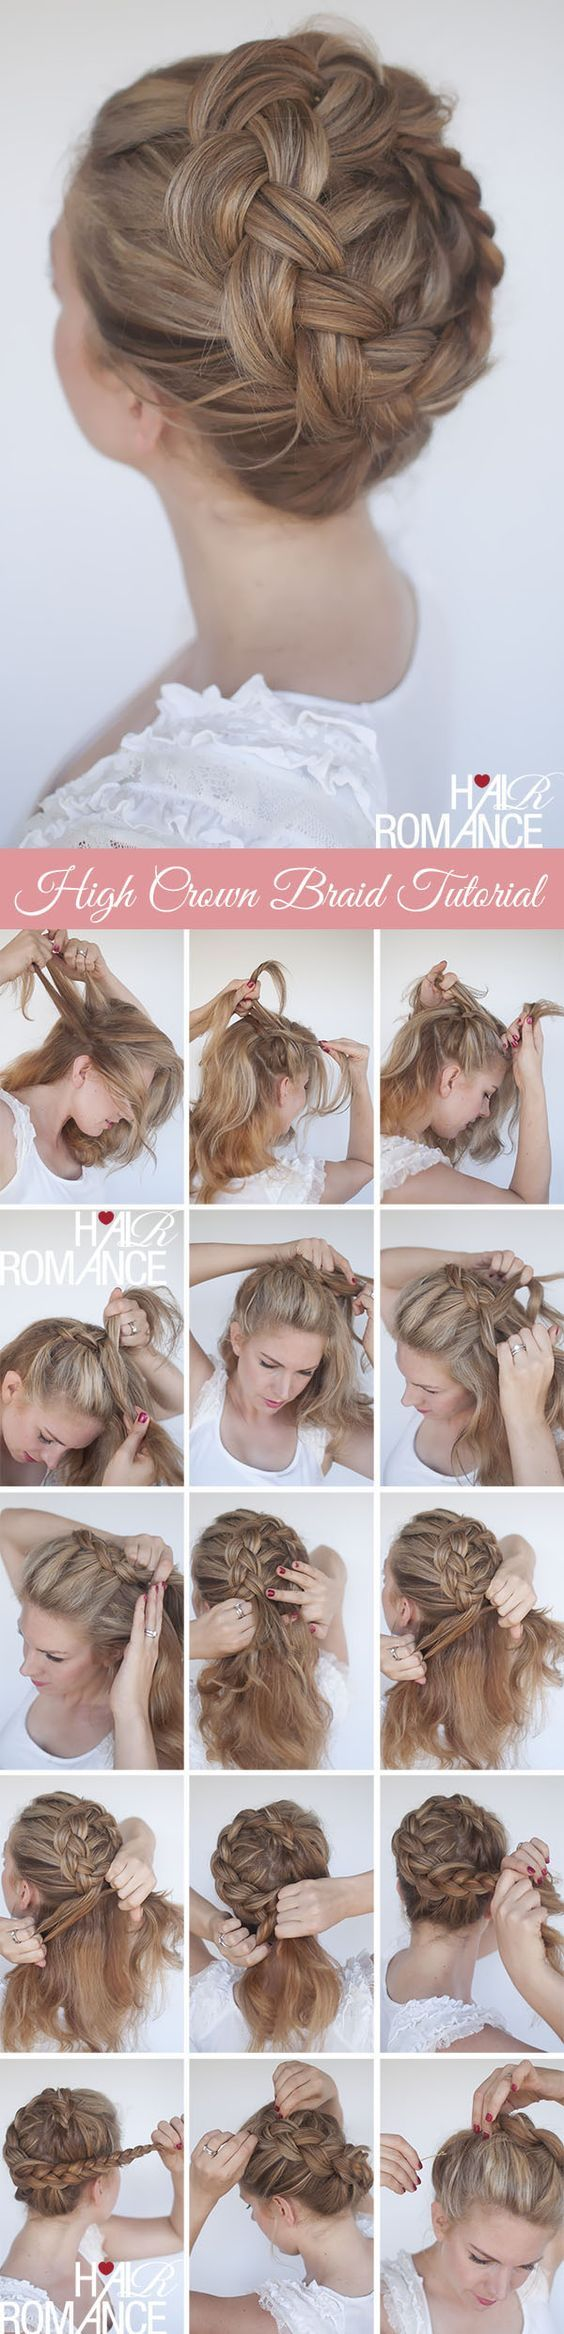 best haj images on pinterest coiffure facile tuto coiffure and